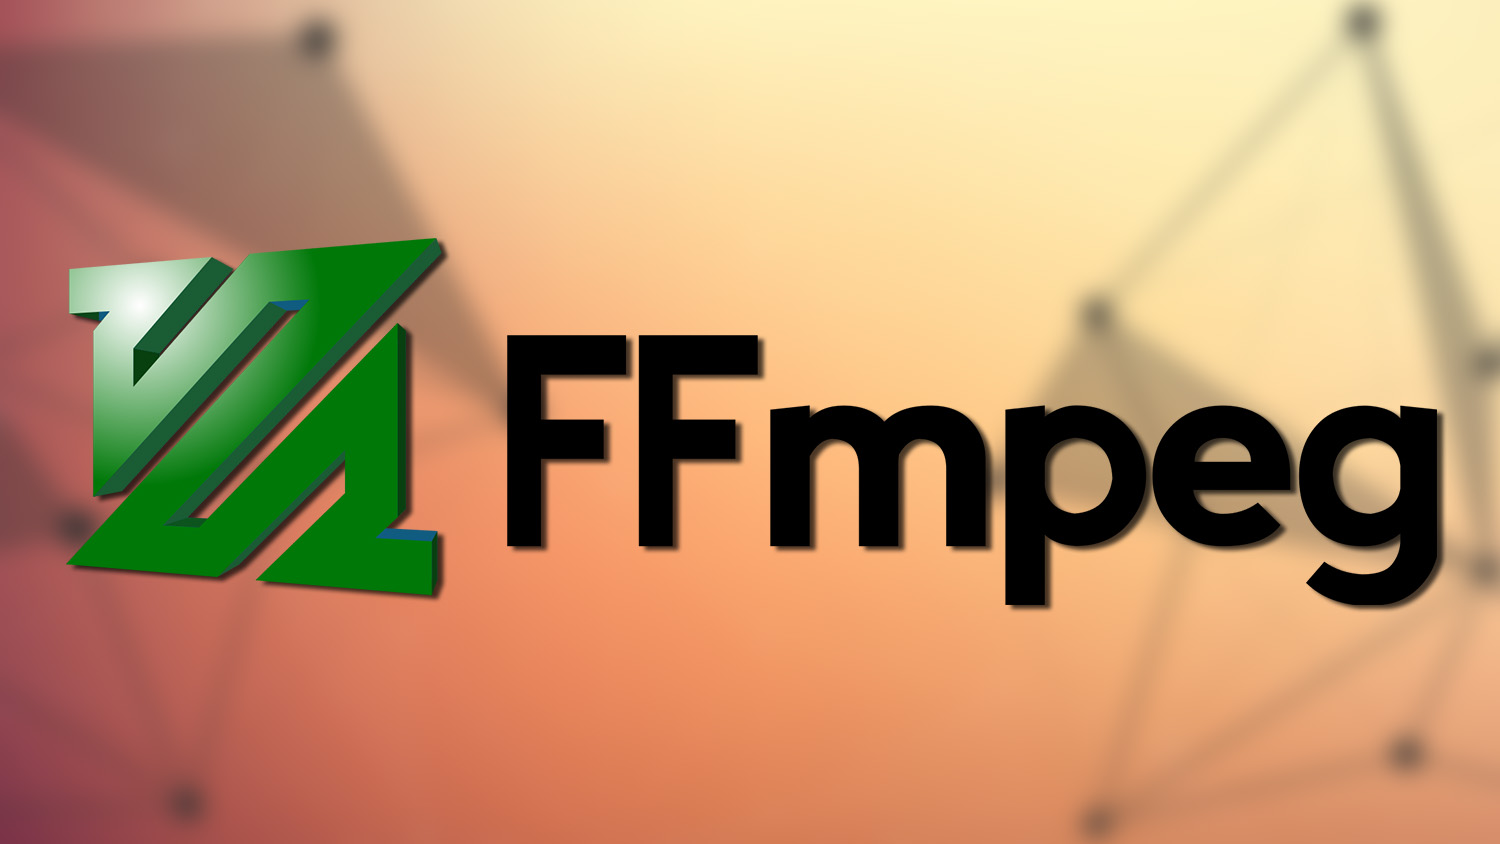 Communication on this topic: How to Install FFmpeg on Windows, how-to-install-ffmpeg-on-windows/